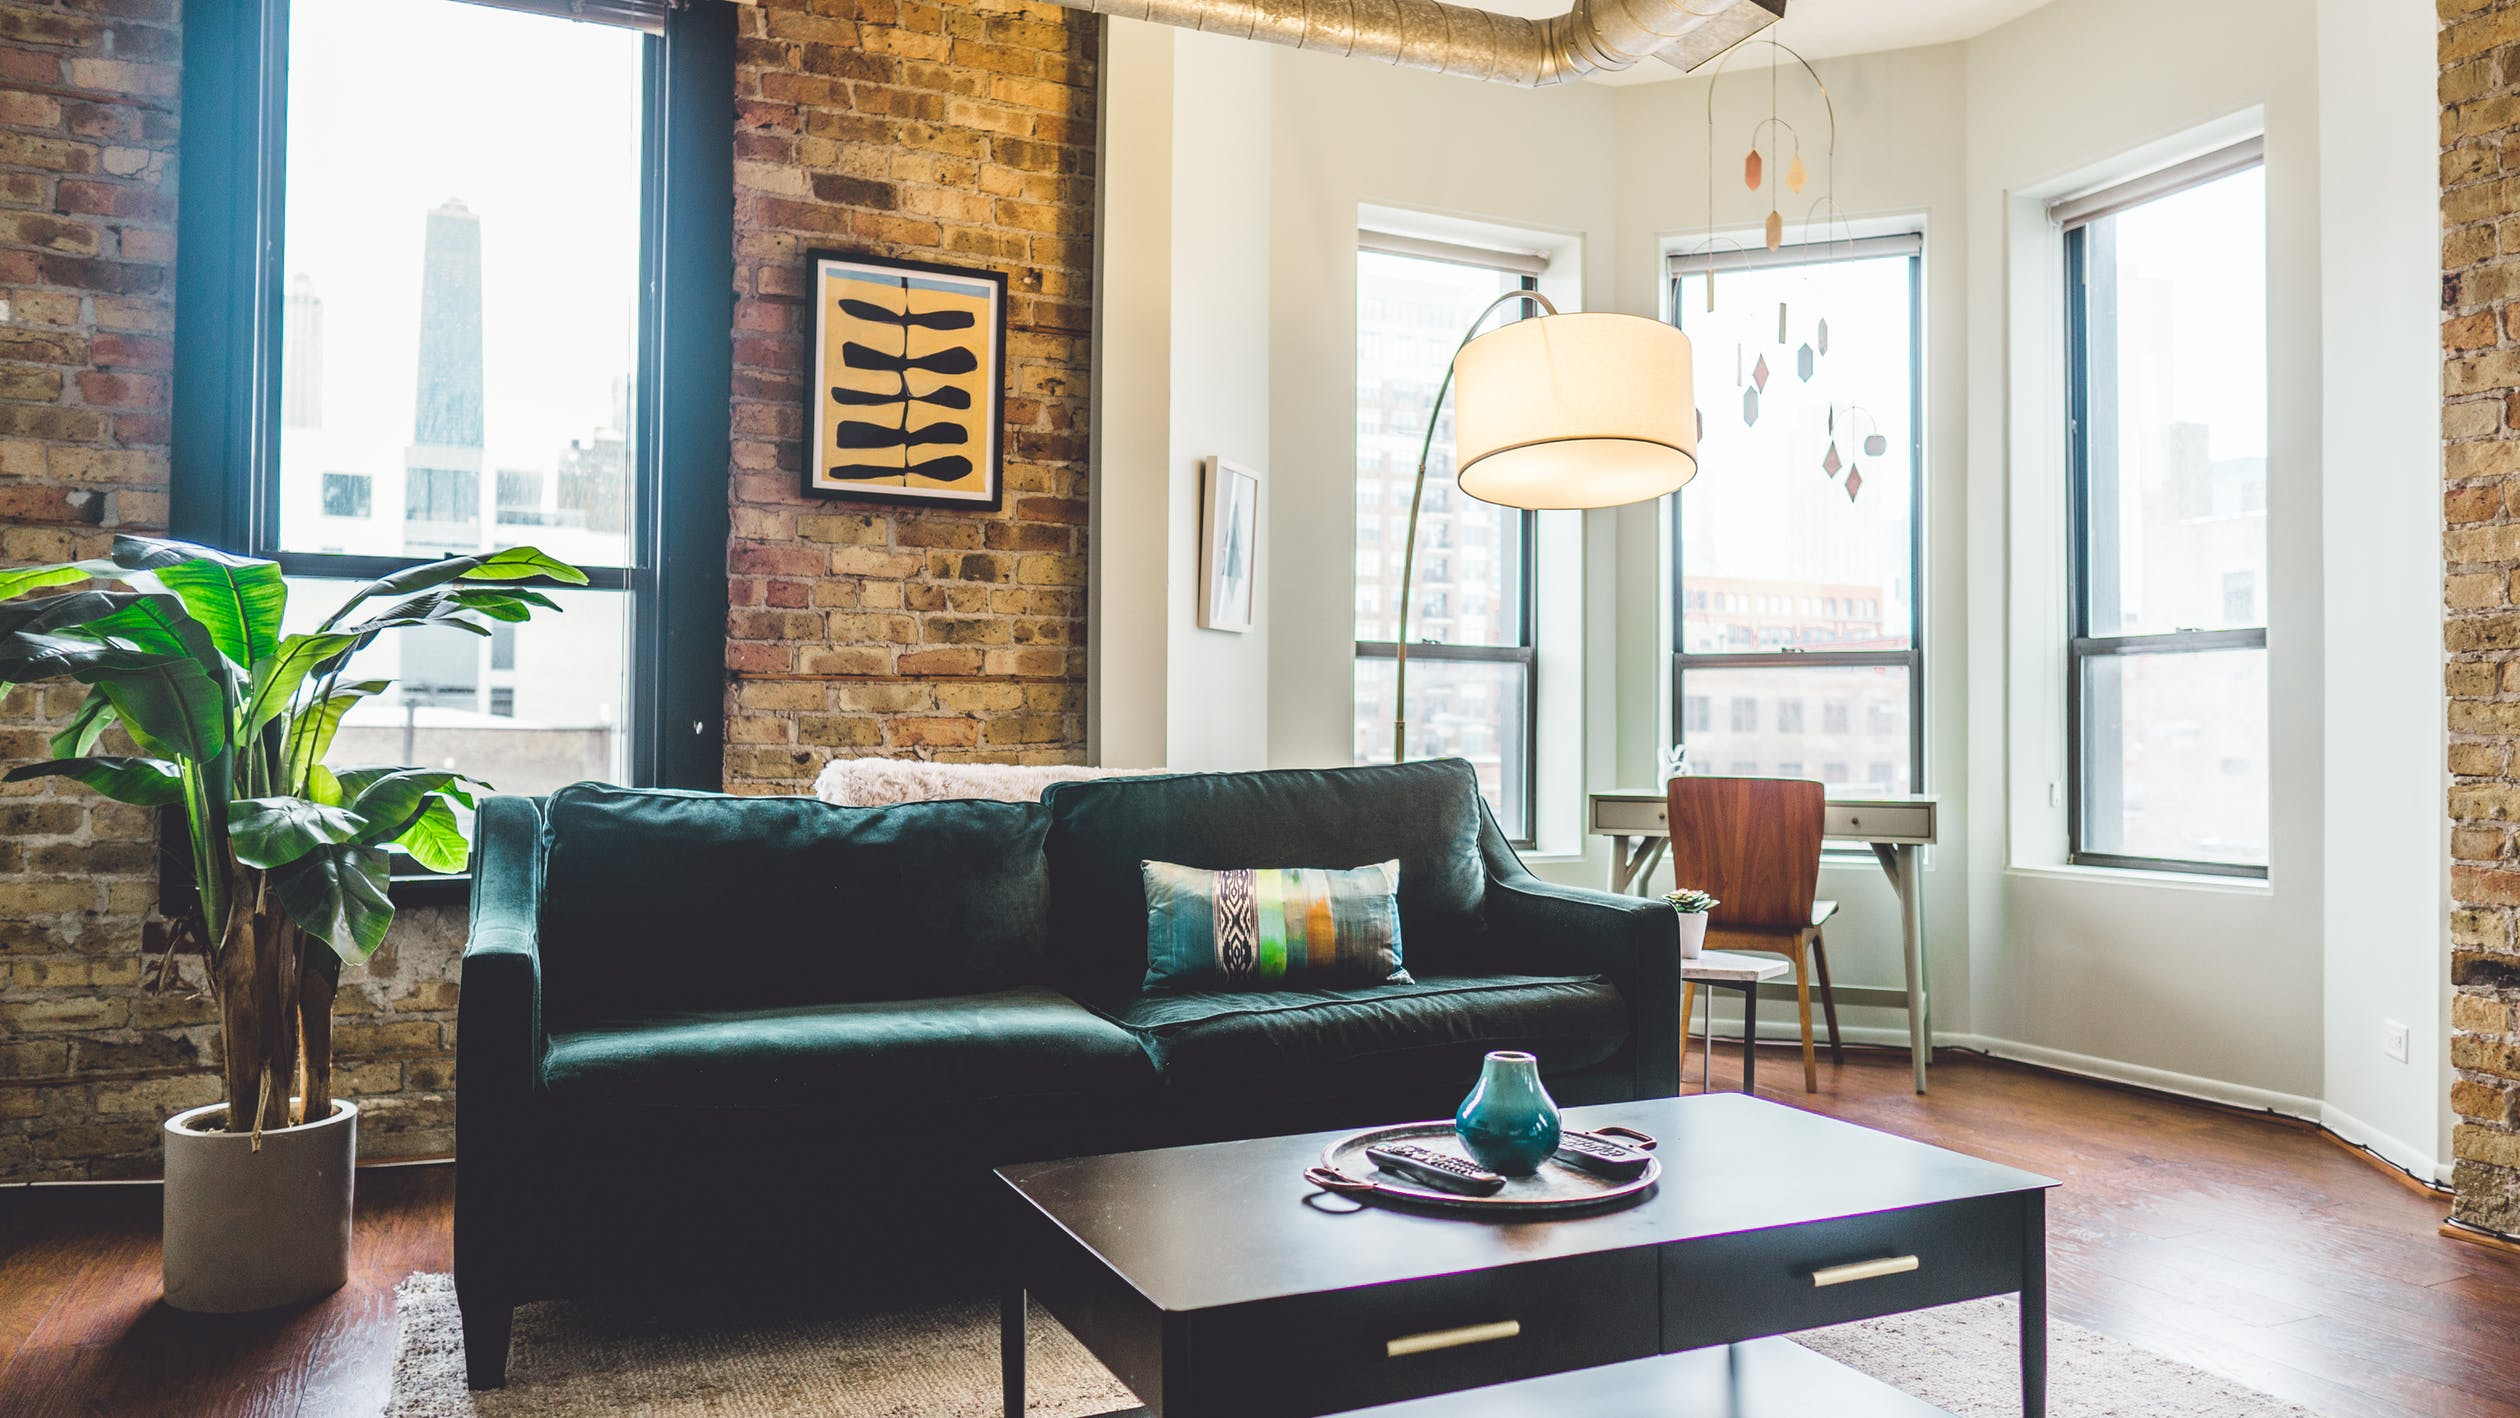 How to Transform Your Apartment Lighting from Drab to Delightful